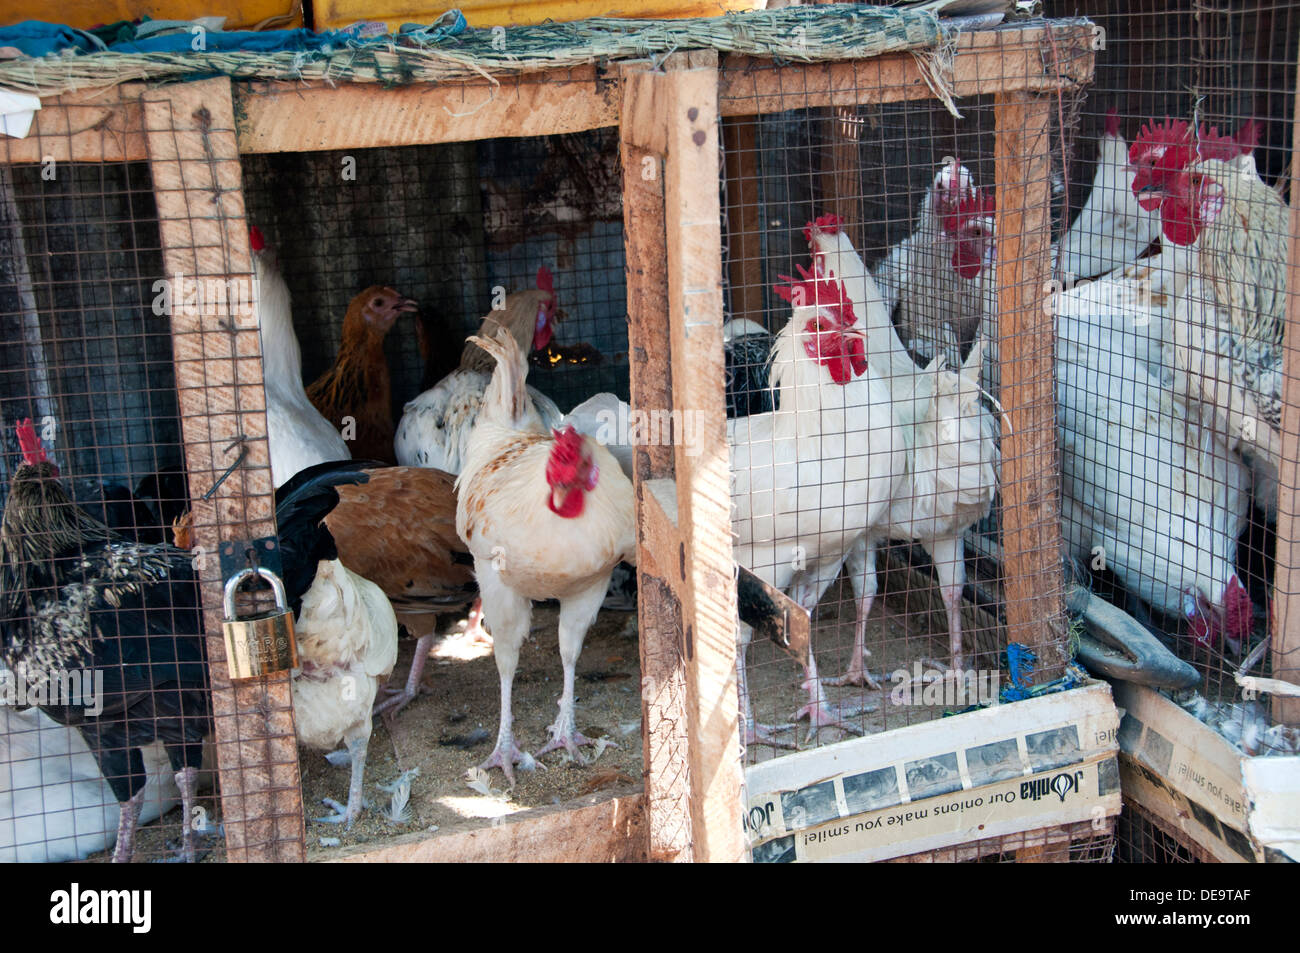 Chickens in Overcrowded Conditions in Cage, Serrekunda Market, The Gambia, West Africa - Stock Image